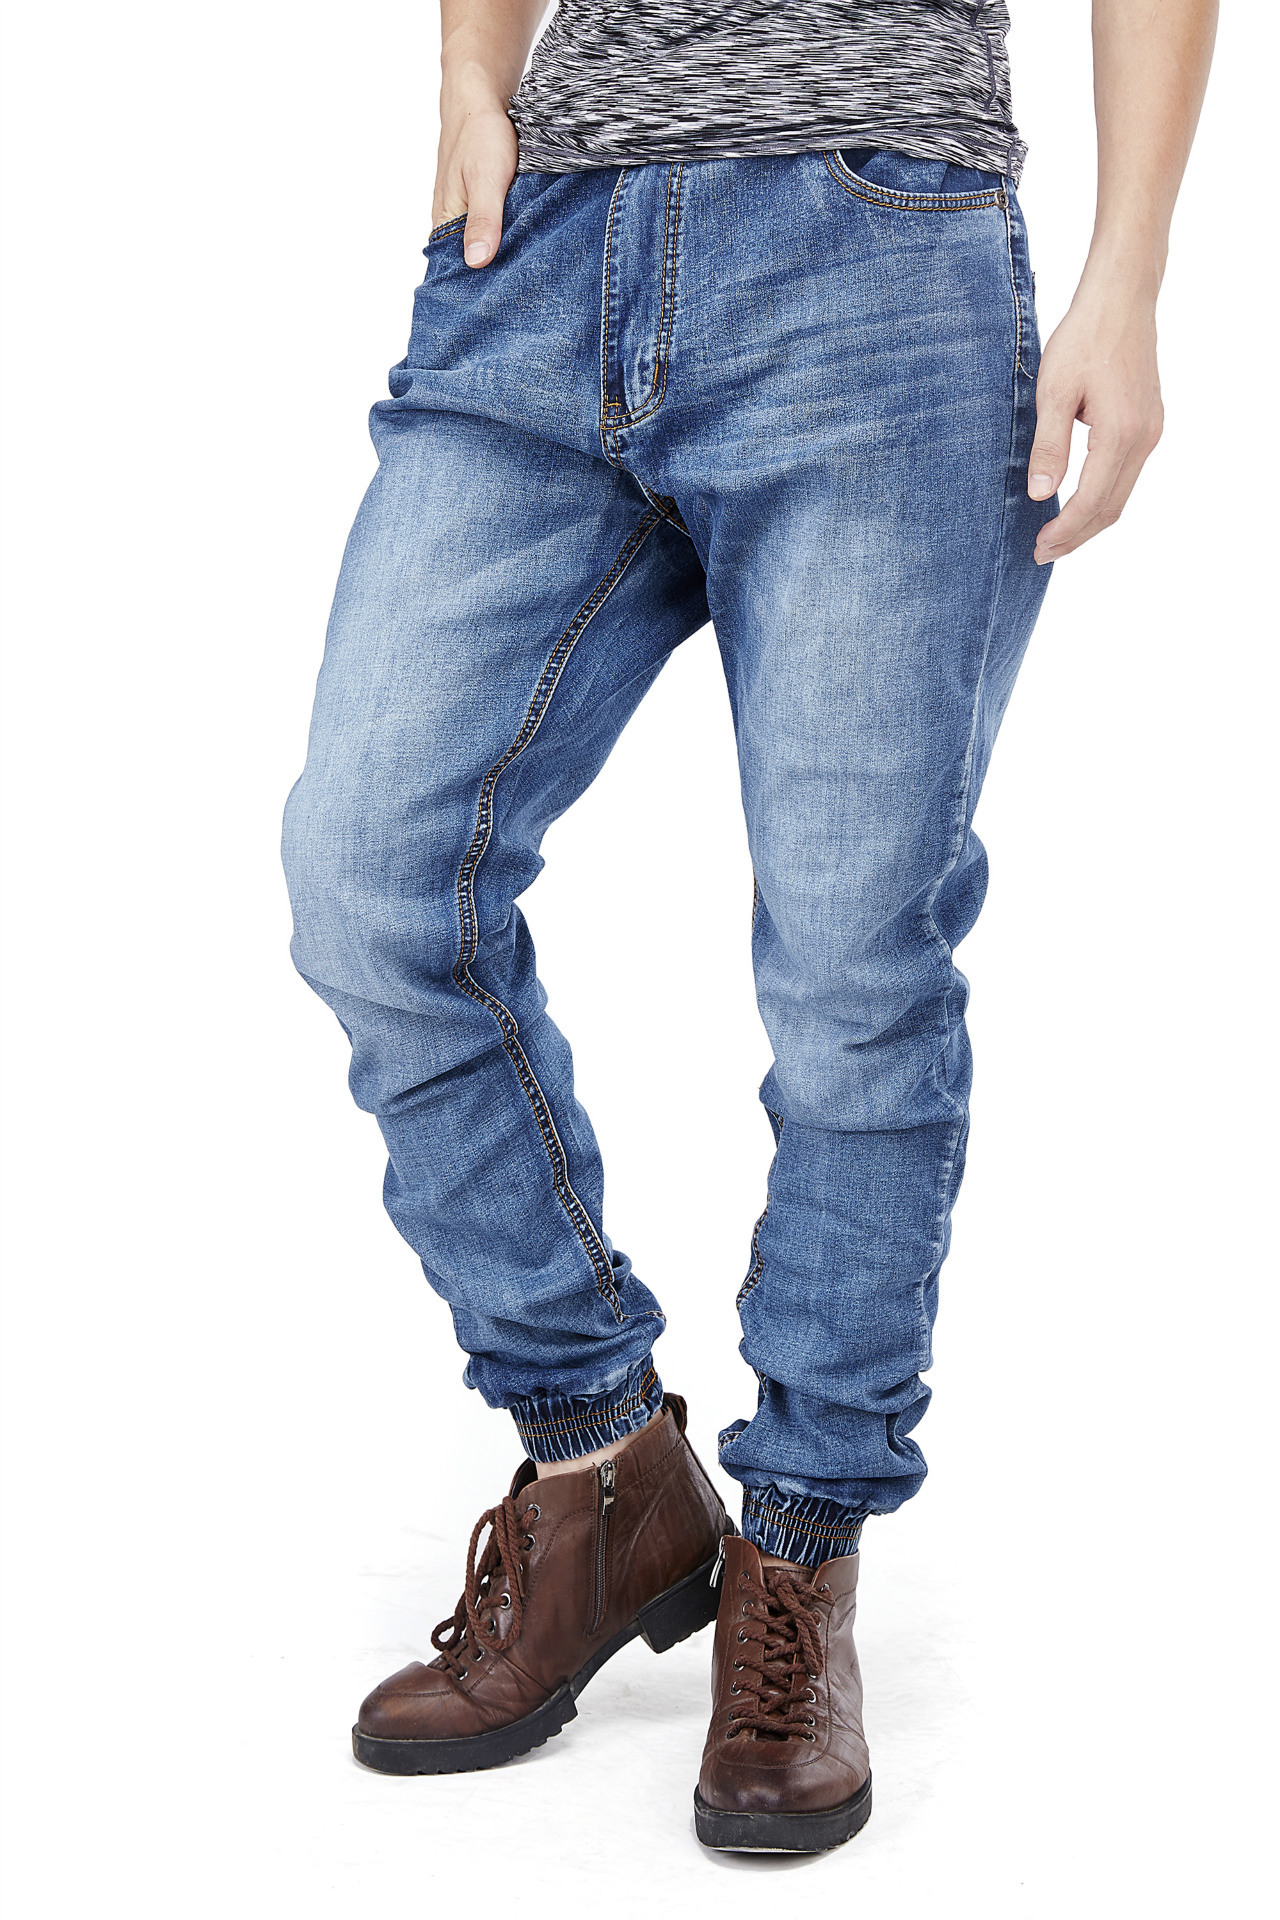 2017 Mens Jeans Slim Loose Straight Stretch Jeans Big Size Light Blue Long Trousers Size S-6XL Jeans For MenОдежда и ак�е��уары<br><br><br>Aliexpress